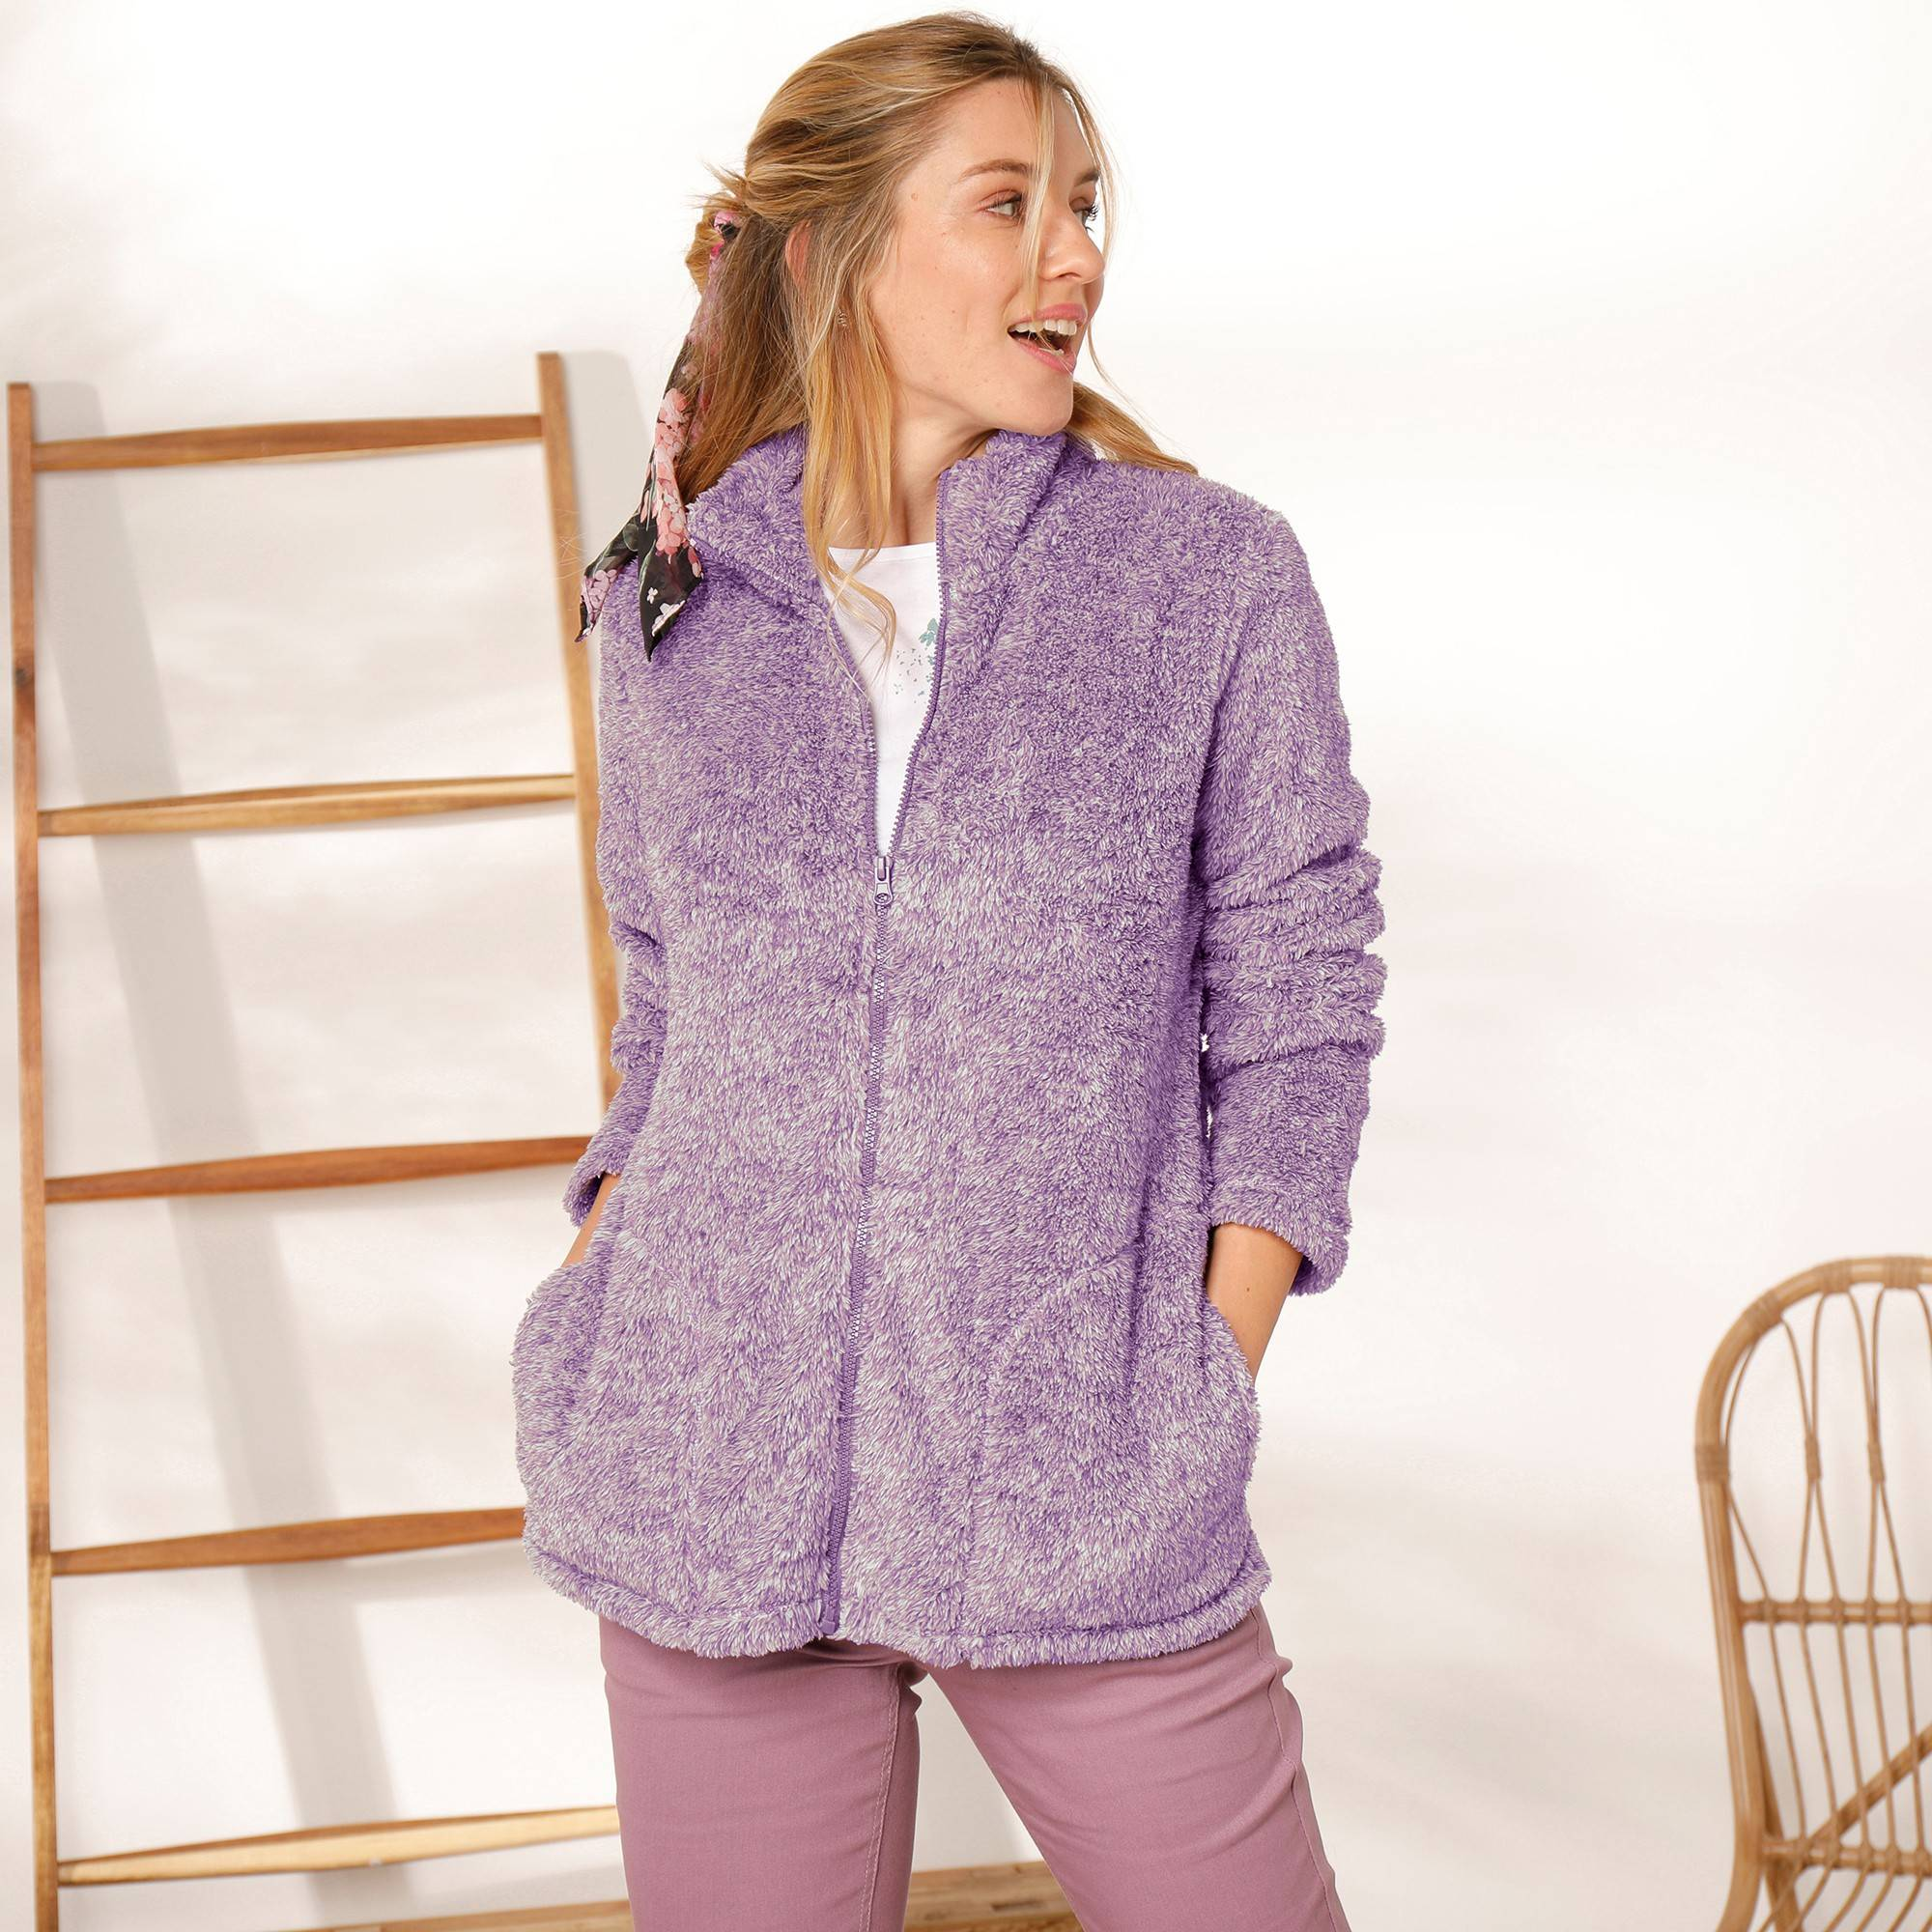 Casual Collection Veste maille peluche - Violet - Taille : 52 - Blancheporte